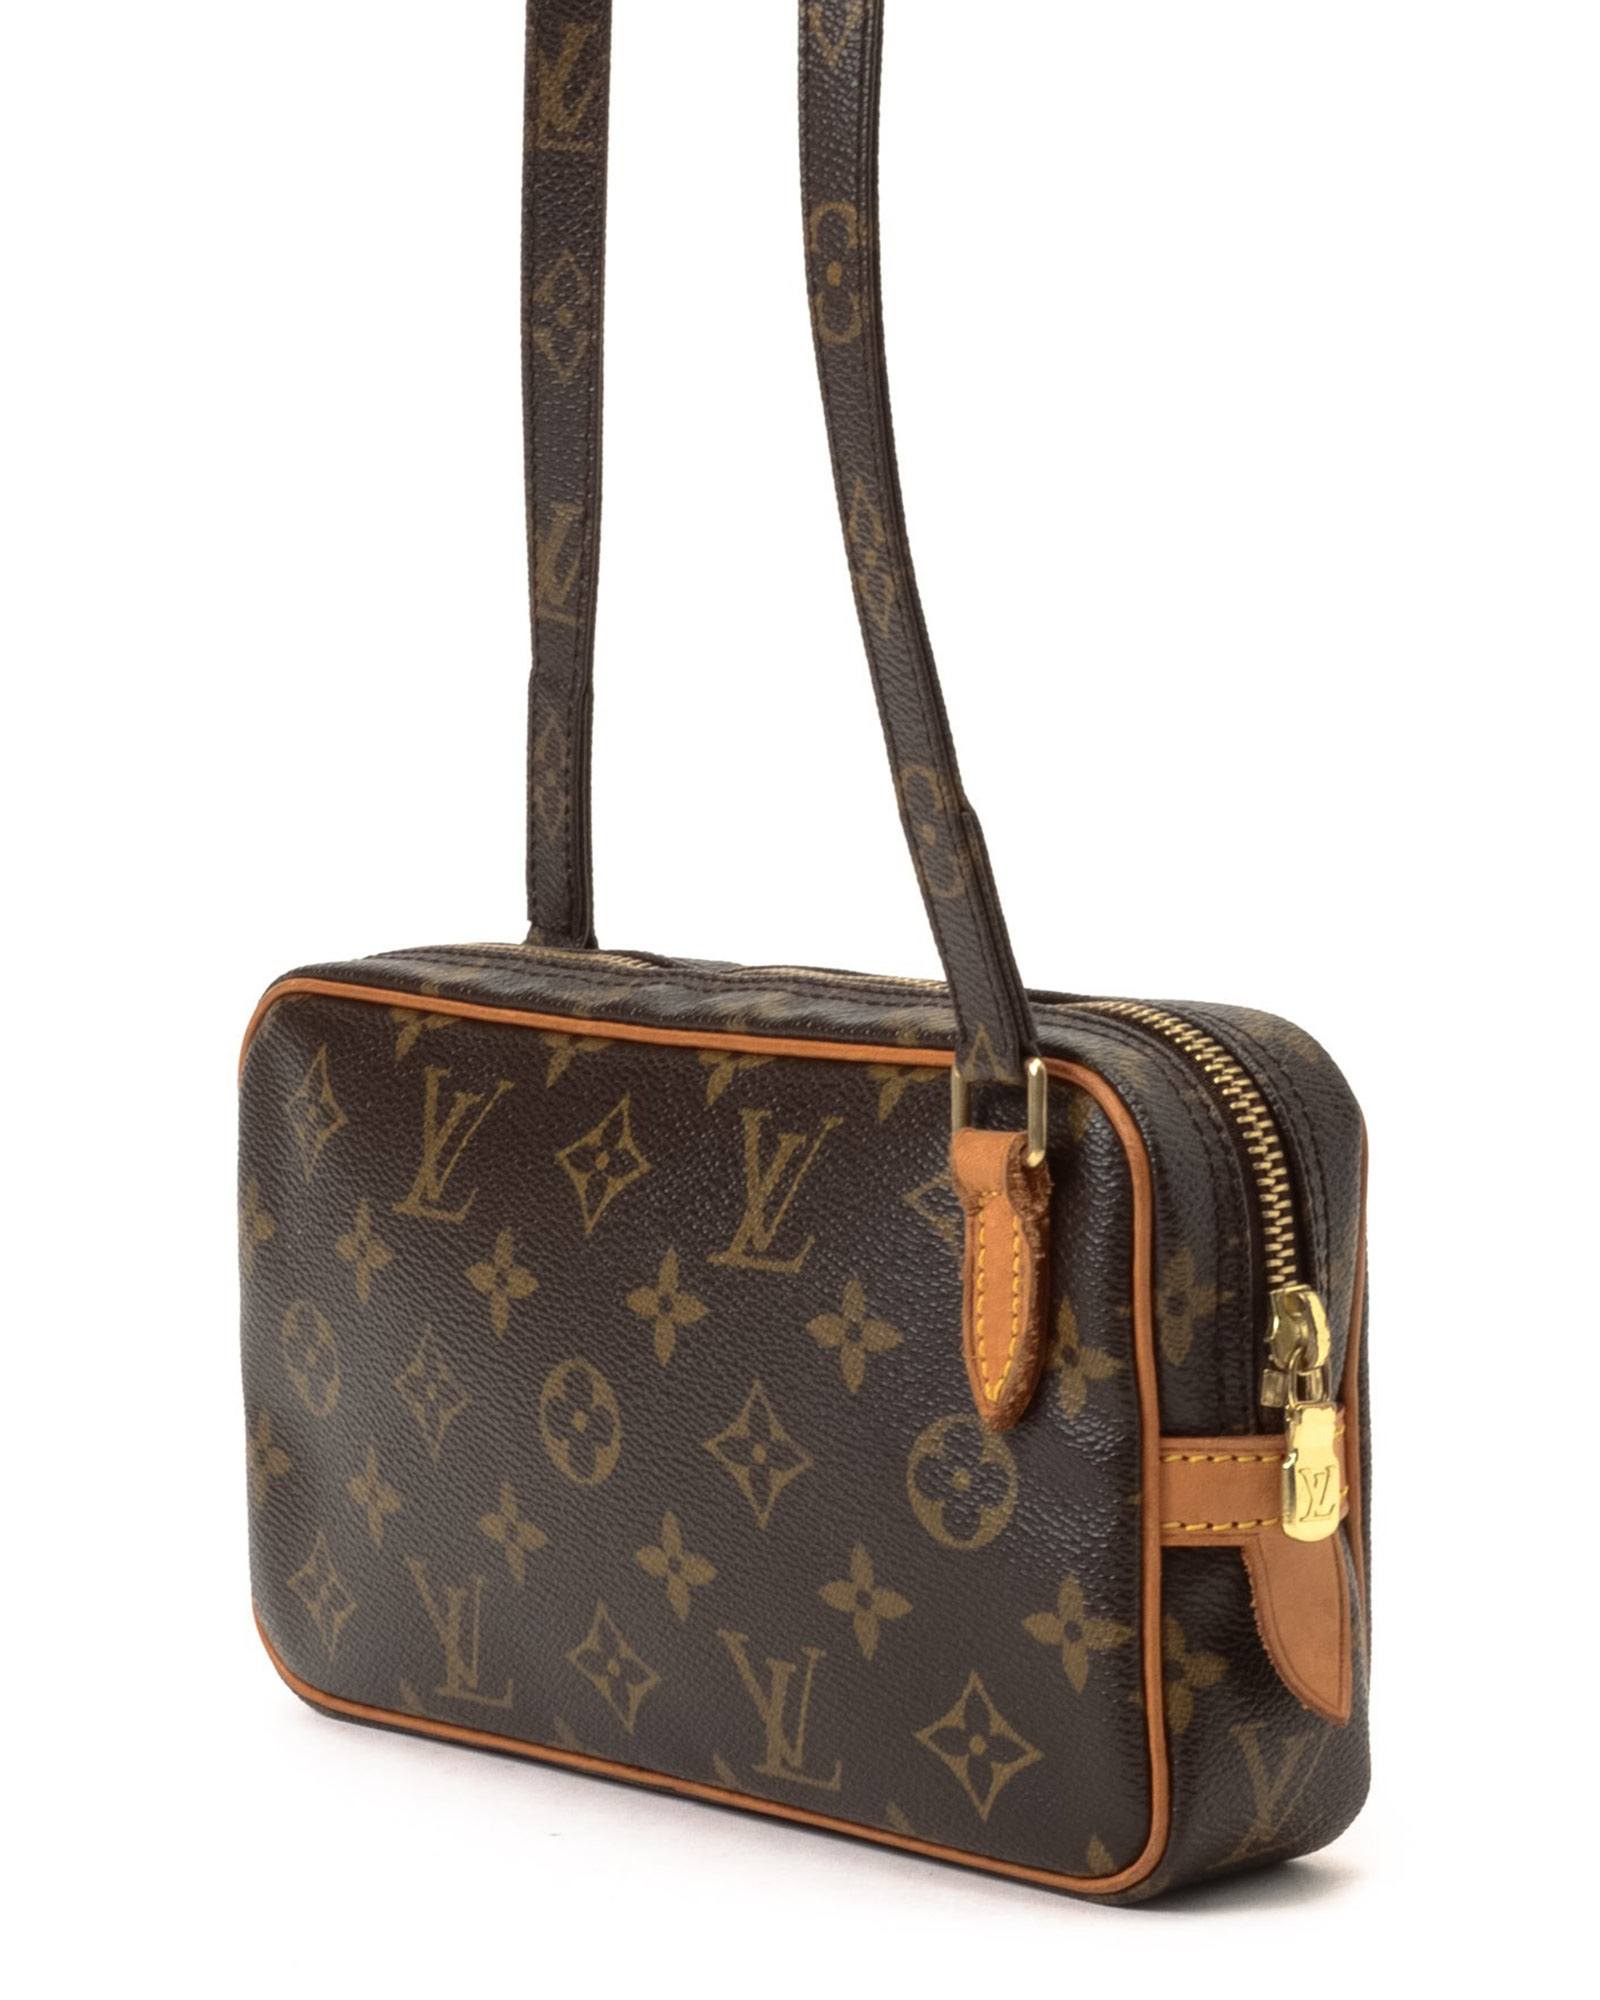 Popular Louis Vuitton Monogram Abbesses Messenger Bag - Handbags - LOU88047 | The RealReal